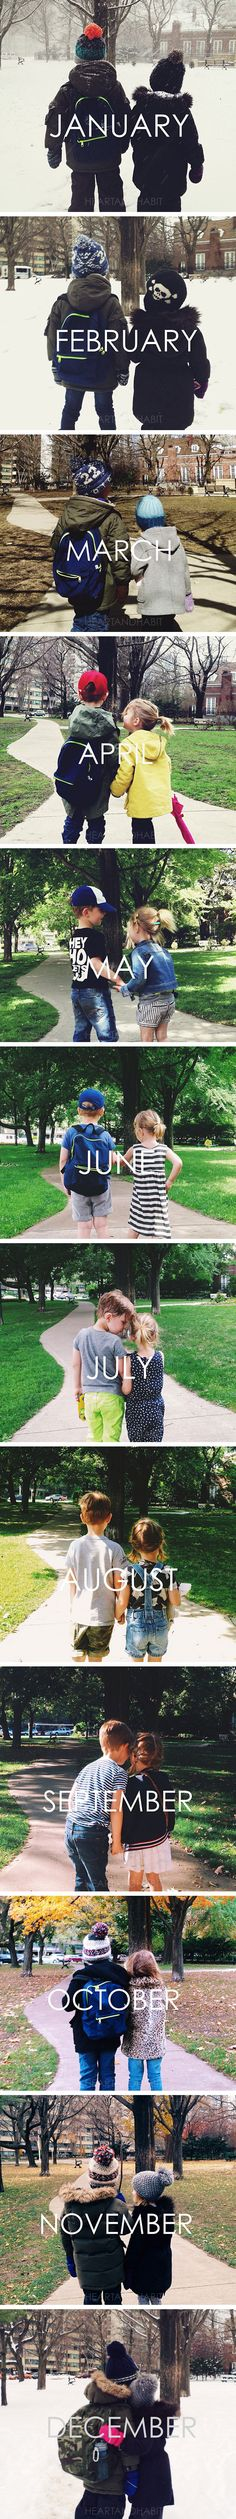 Take a picture in the same spot every month and then make a calendar out of it! Has to be one of the cutest things I've ever seen!